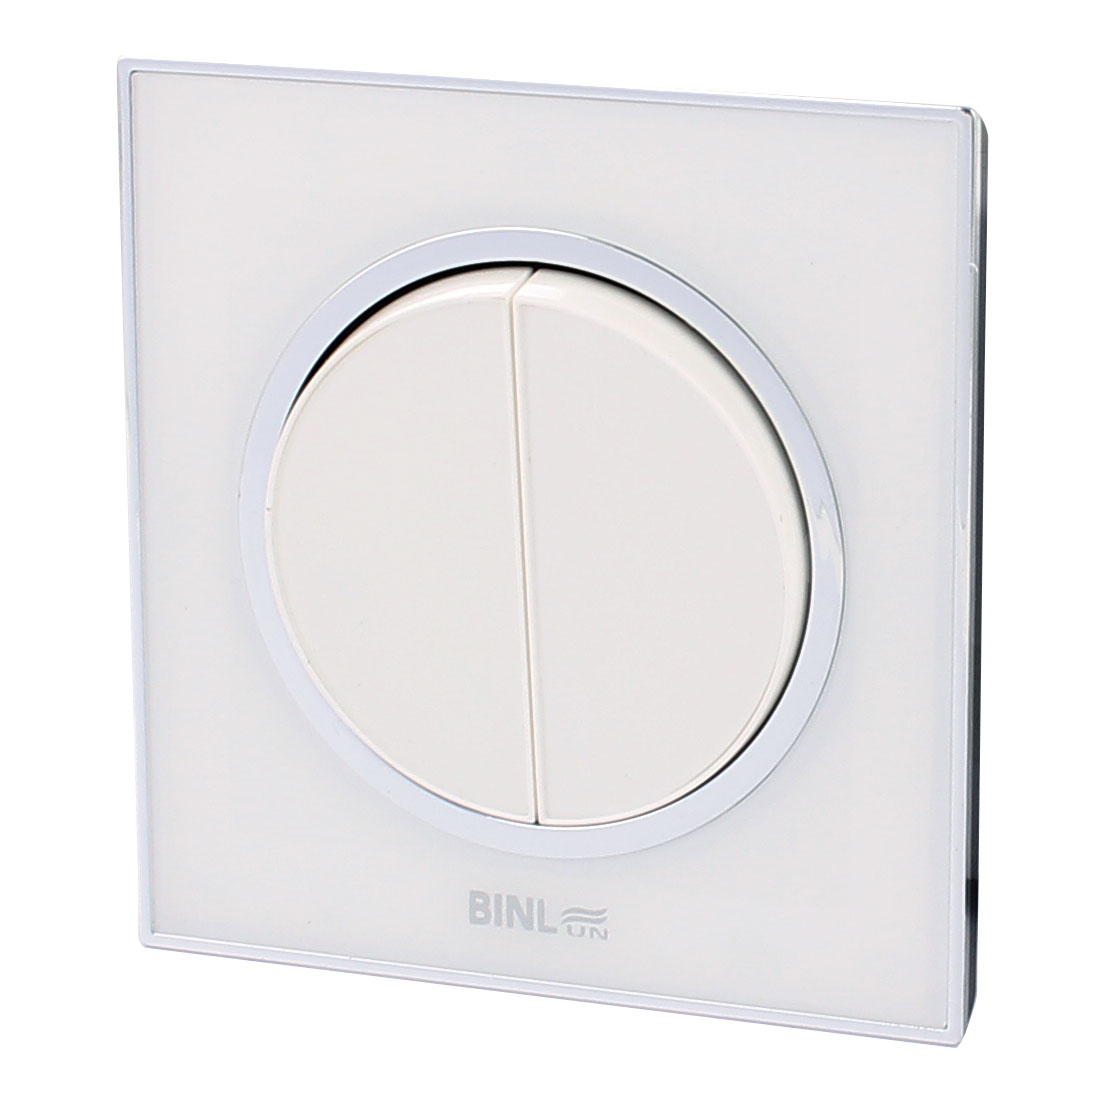 86 Type AC 220V 10A 2 Gang 1 Way ON/OFF Wall Mounted Switch White 86 x 86mm